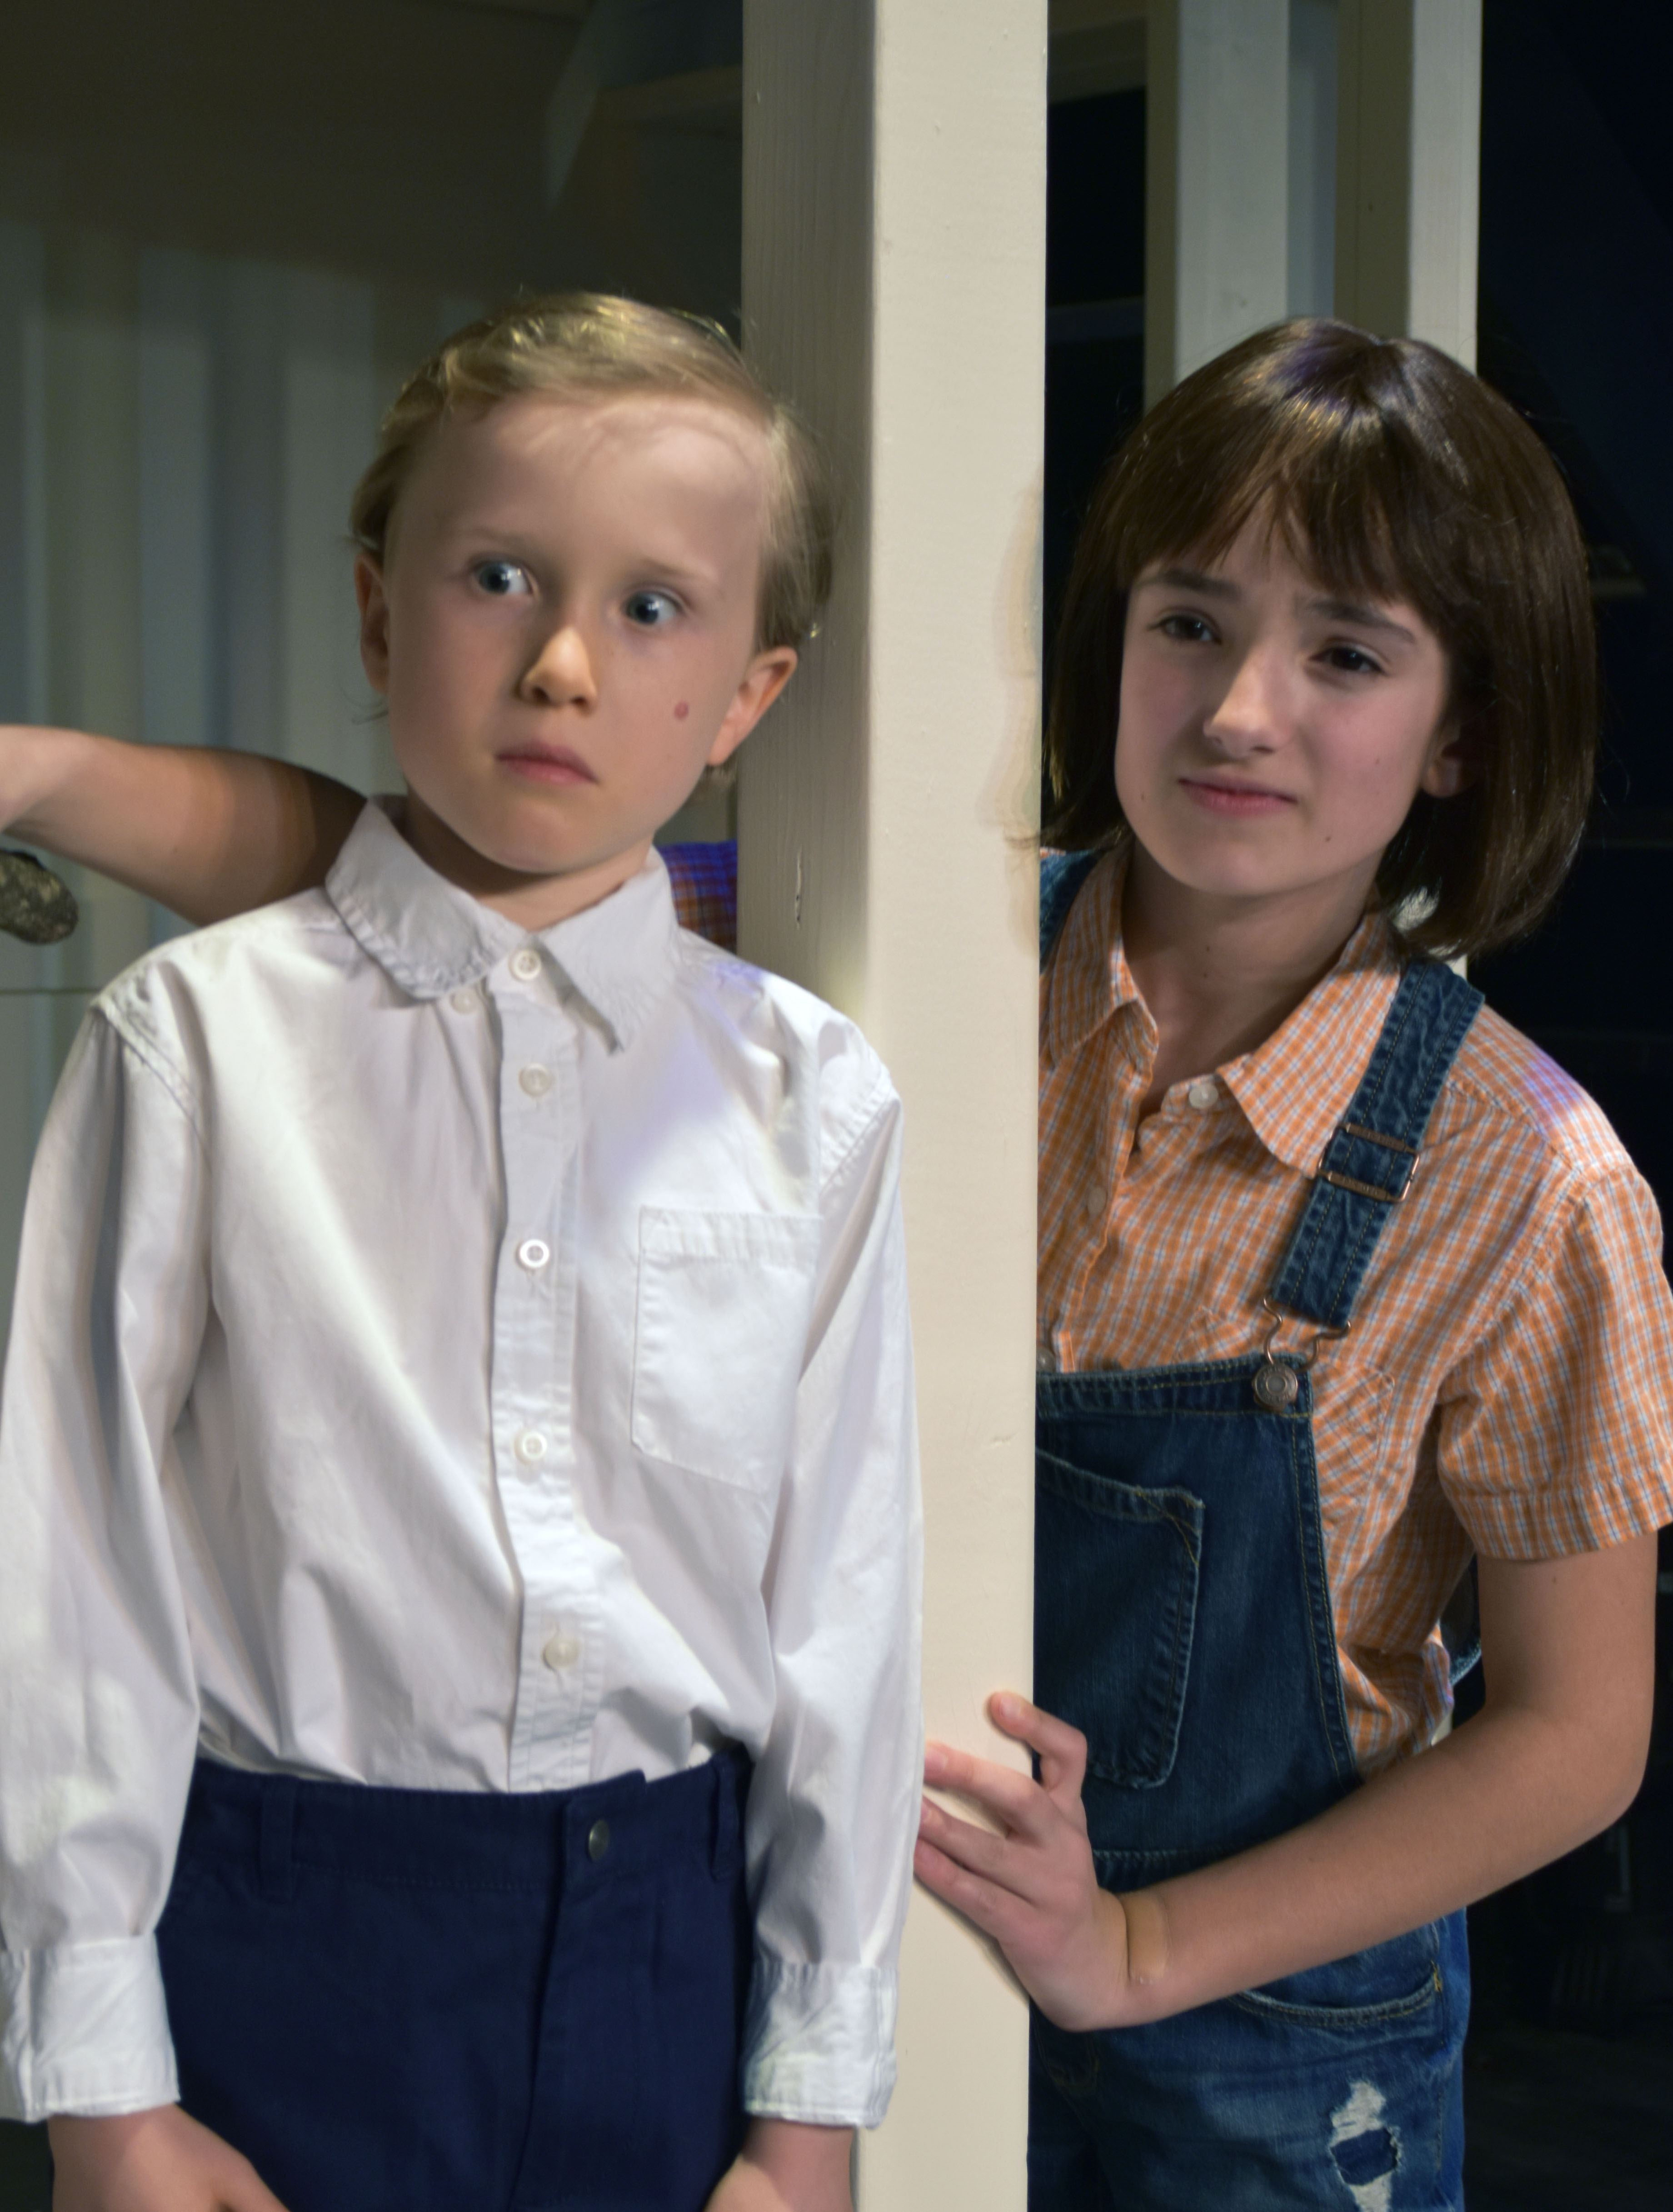 Caden Mitchell as Dill with Sophia Manicone as Scout in the Providence Players production of To Kill a Mockingbird Photo by Chip Gertzog, Providence Players